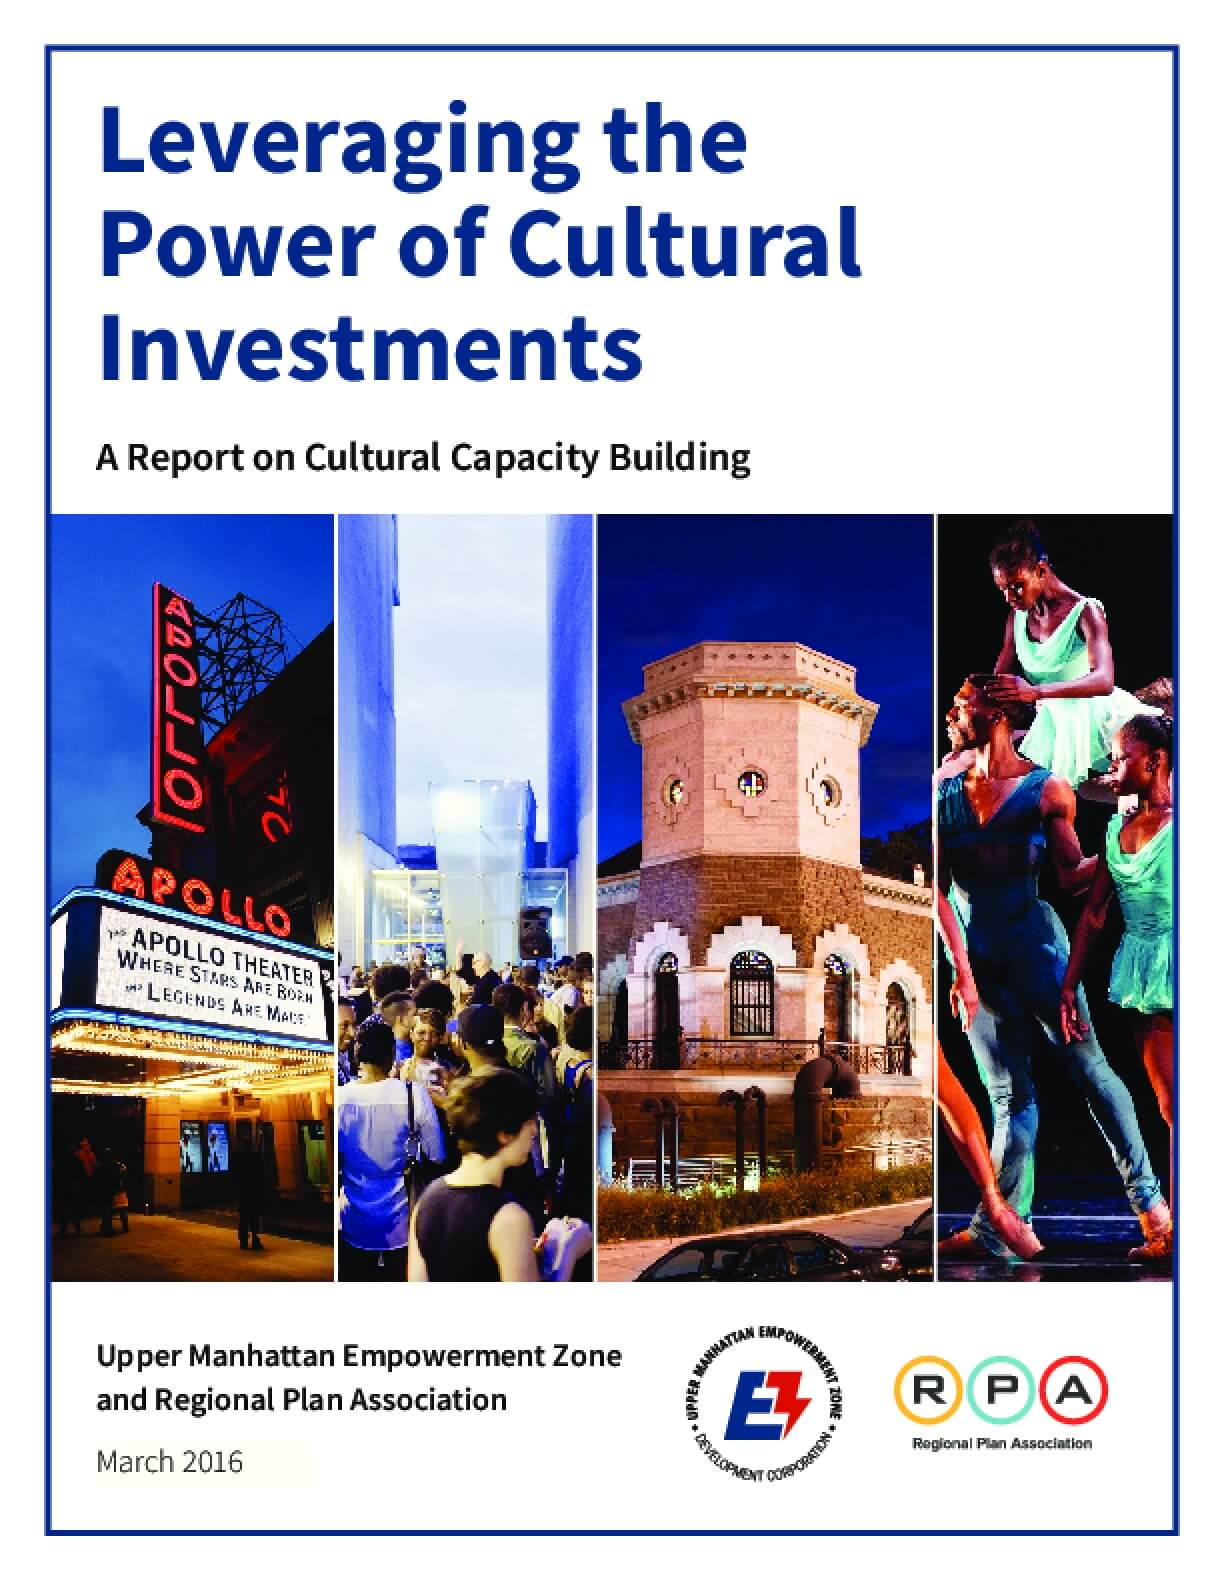 Leveraging the Power of Cultural Investments:  A Report on Cultural Capacity Building